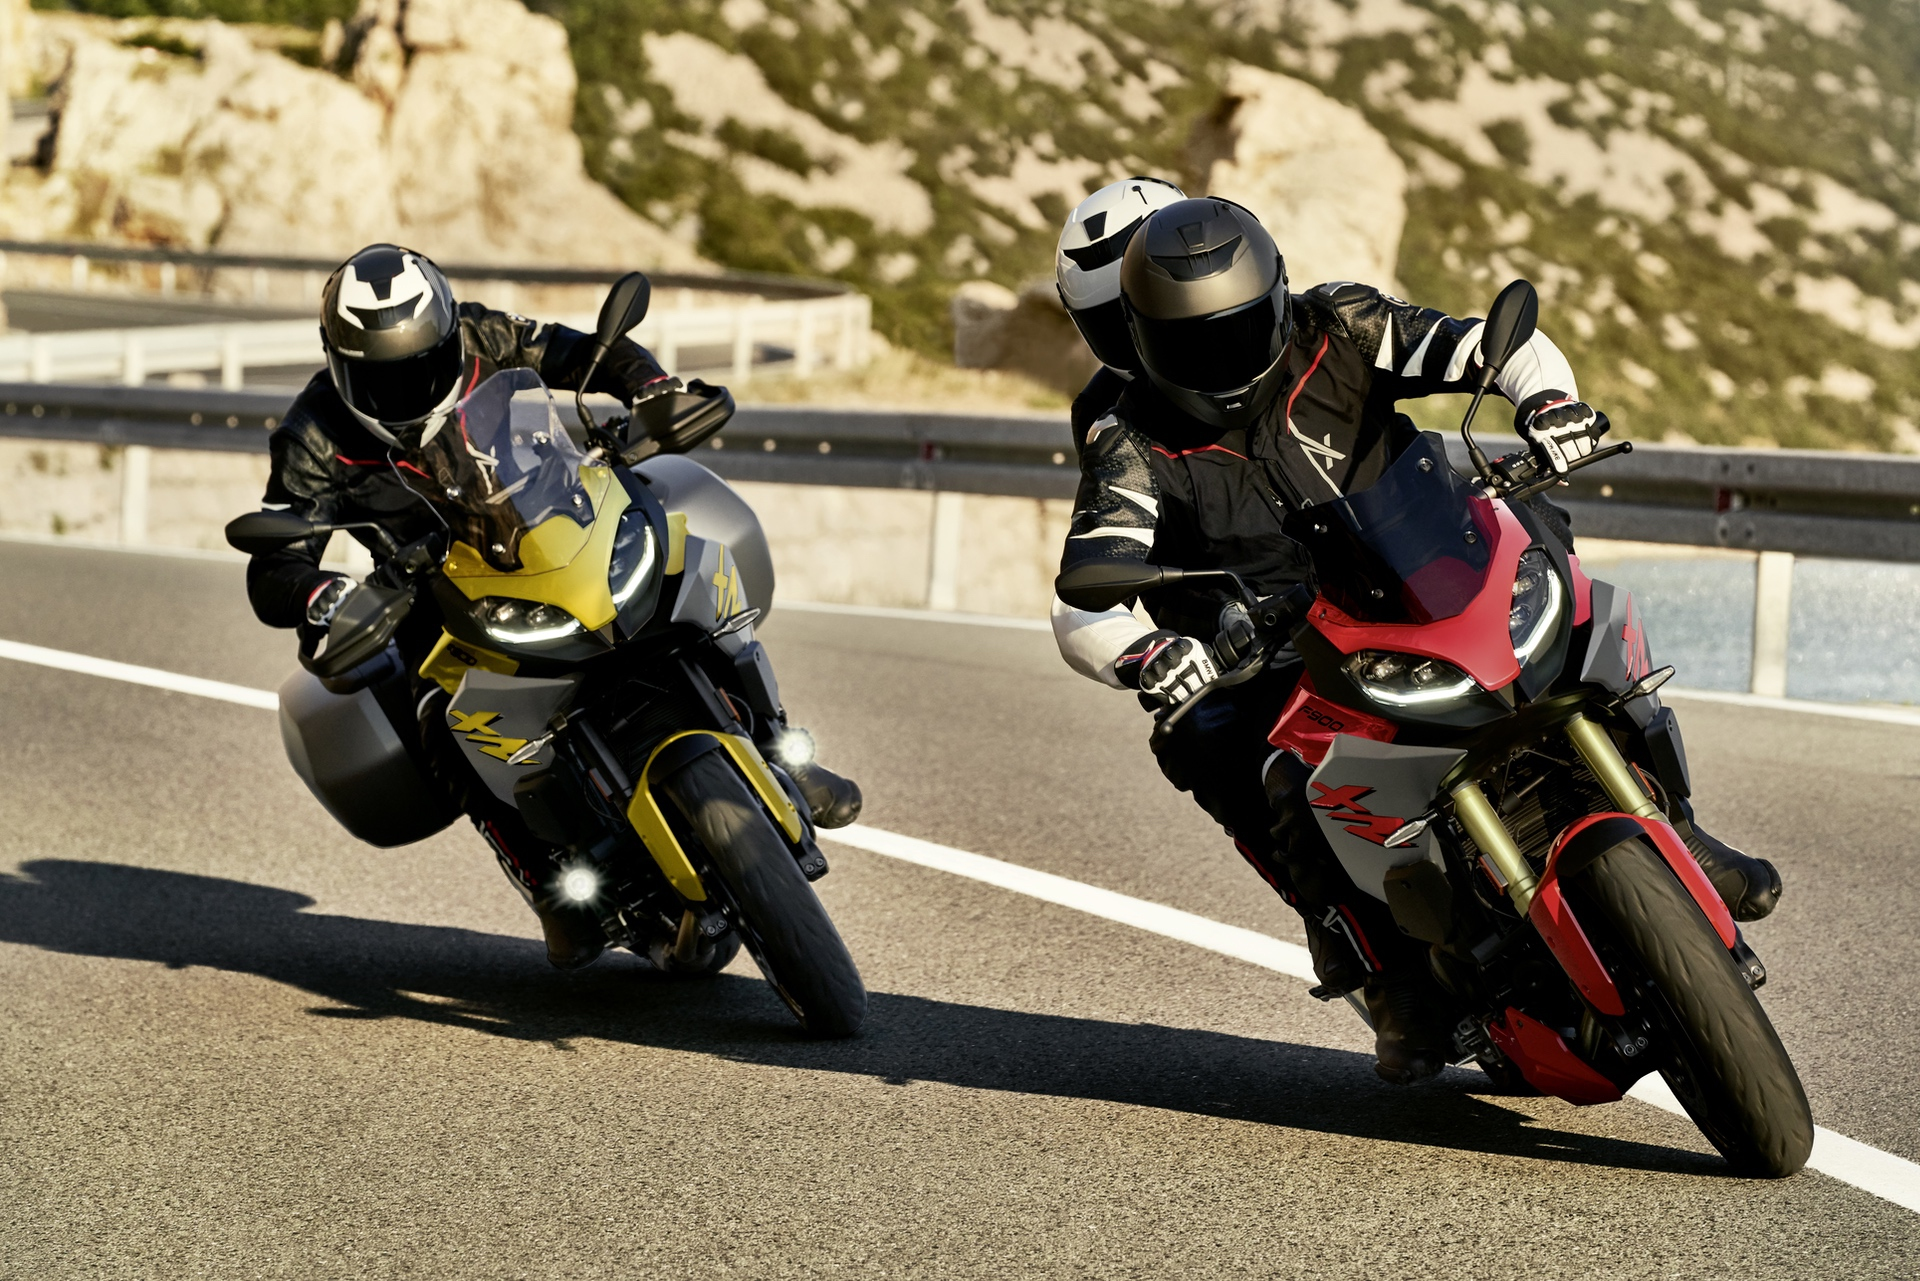 New BMW F 900 R and F 900 XR Unveiled